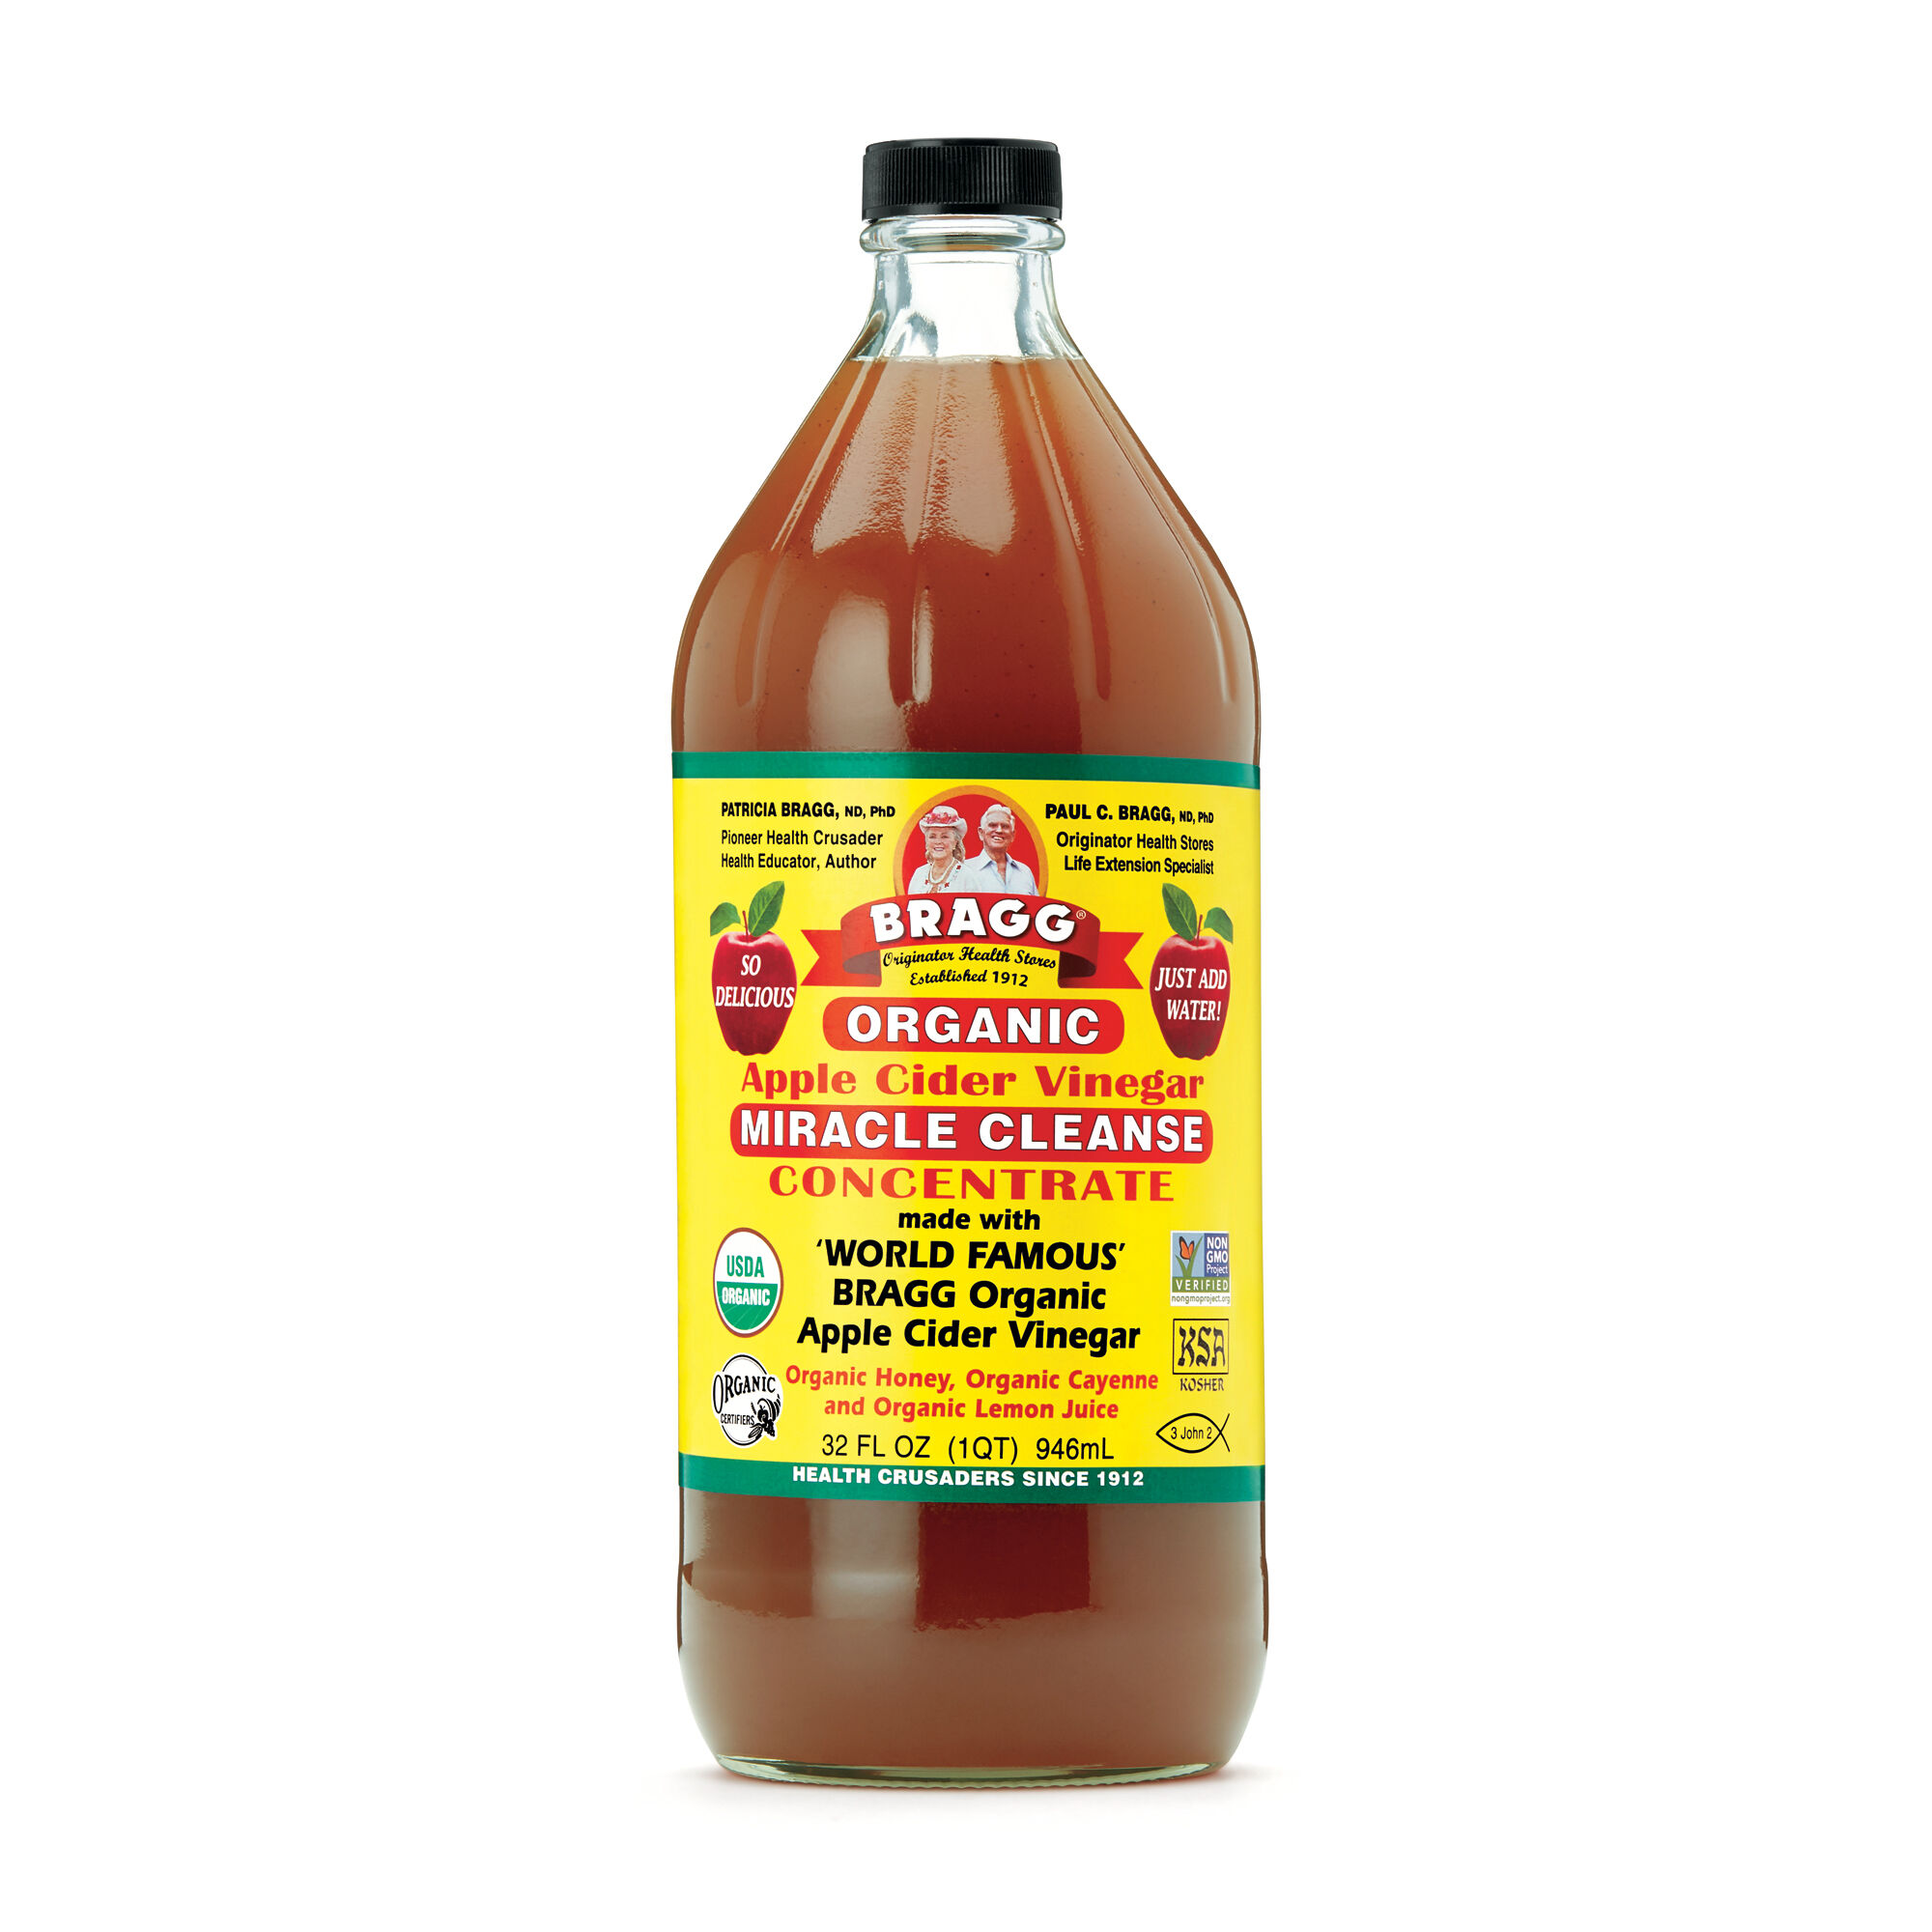 Bragg Organic Apple Cider Vinegar Miracle Cleanse